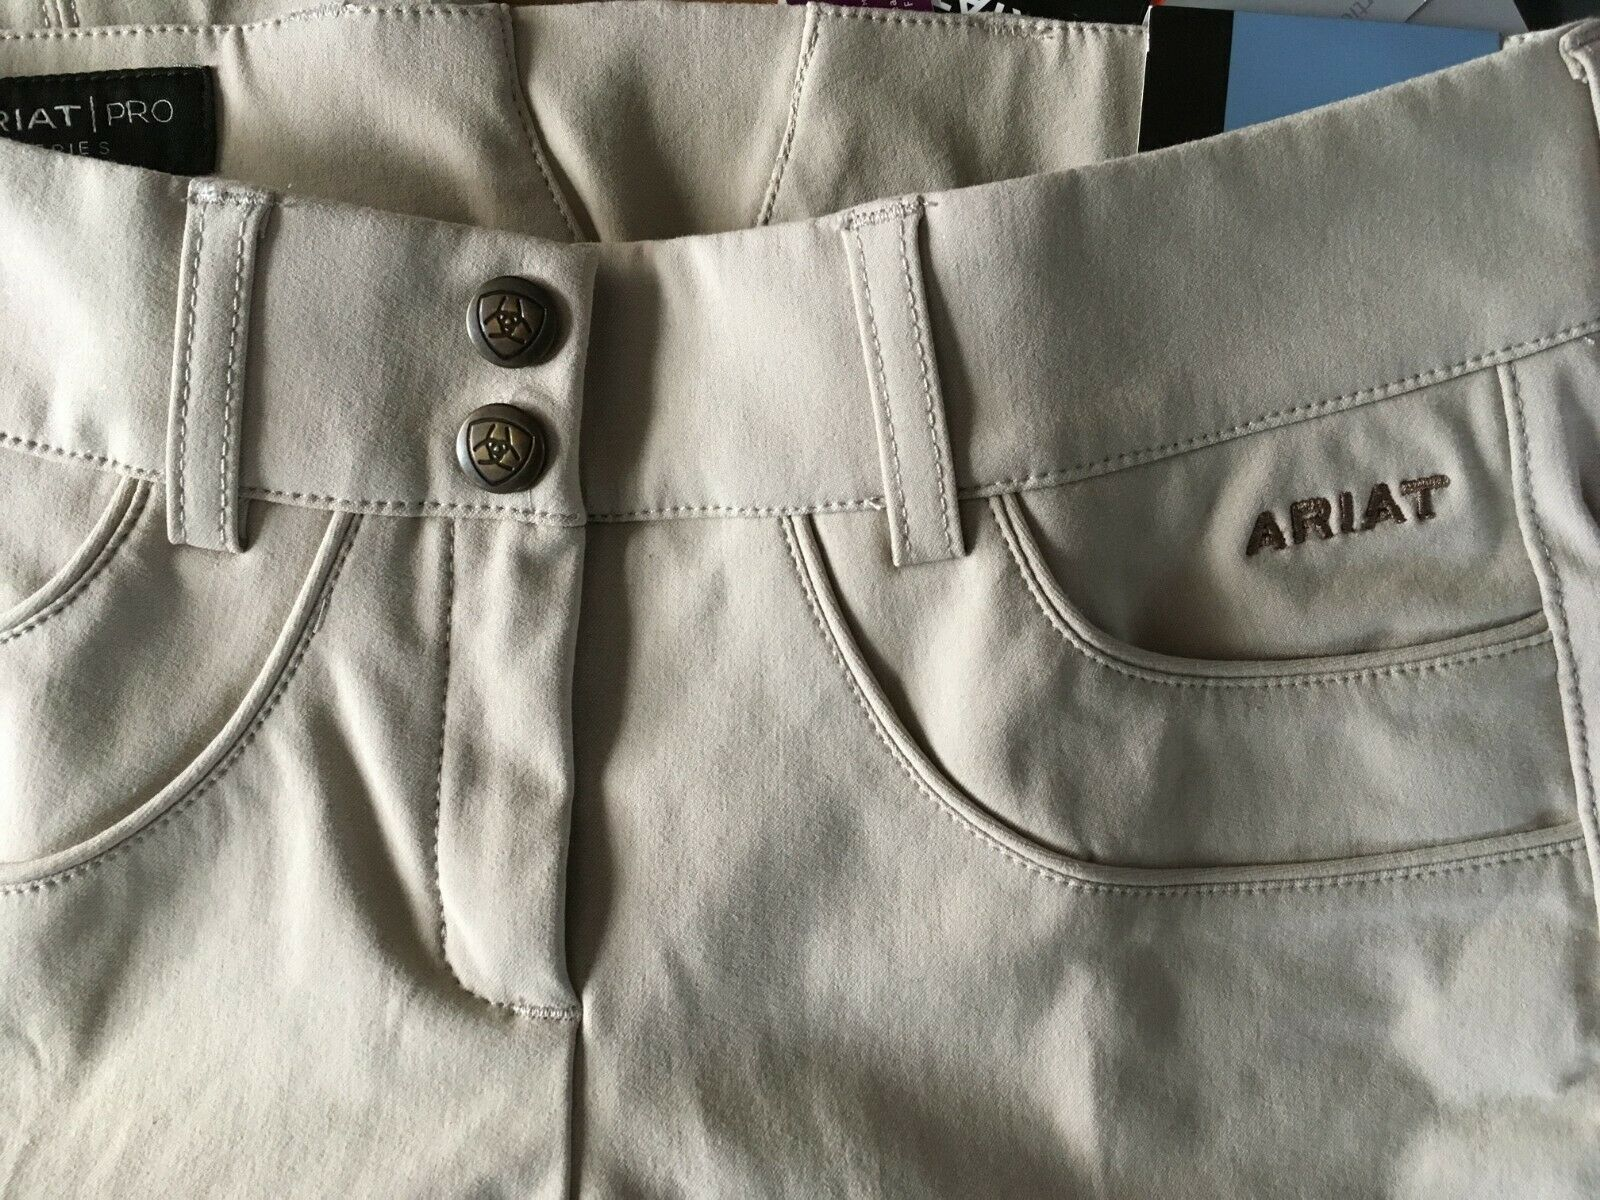 NWT Ladies Ariat Pro Olympia Low Rise Euro Seat  Knee Patch Breeches 22 Reg - TAN  up to 60% discount